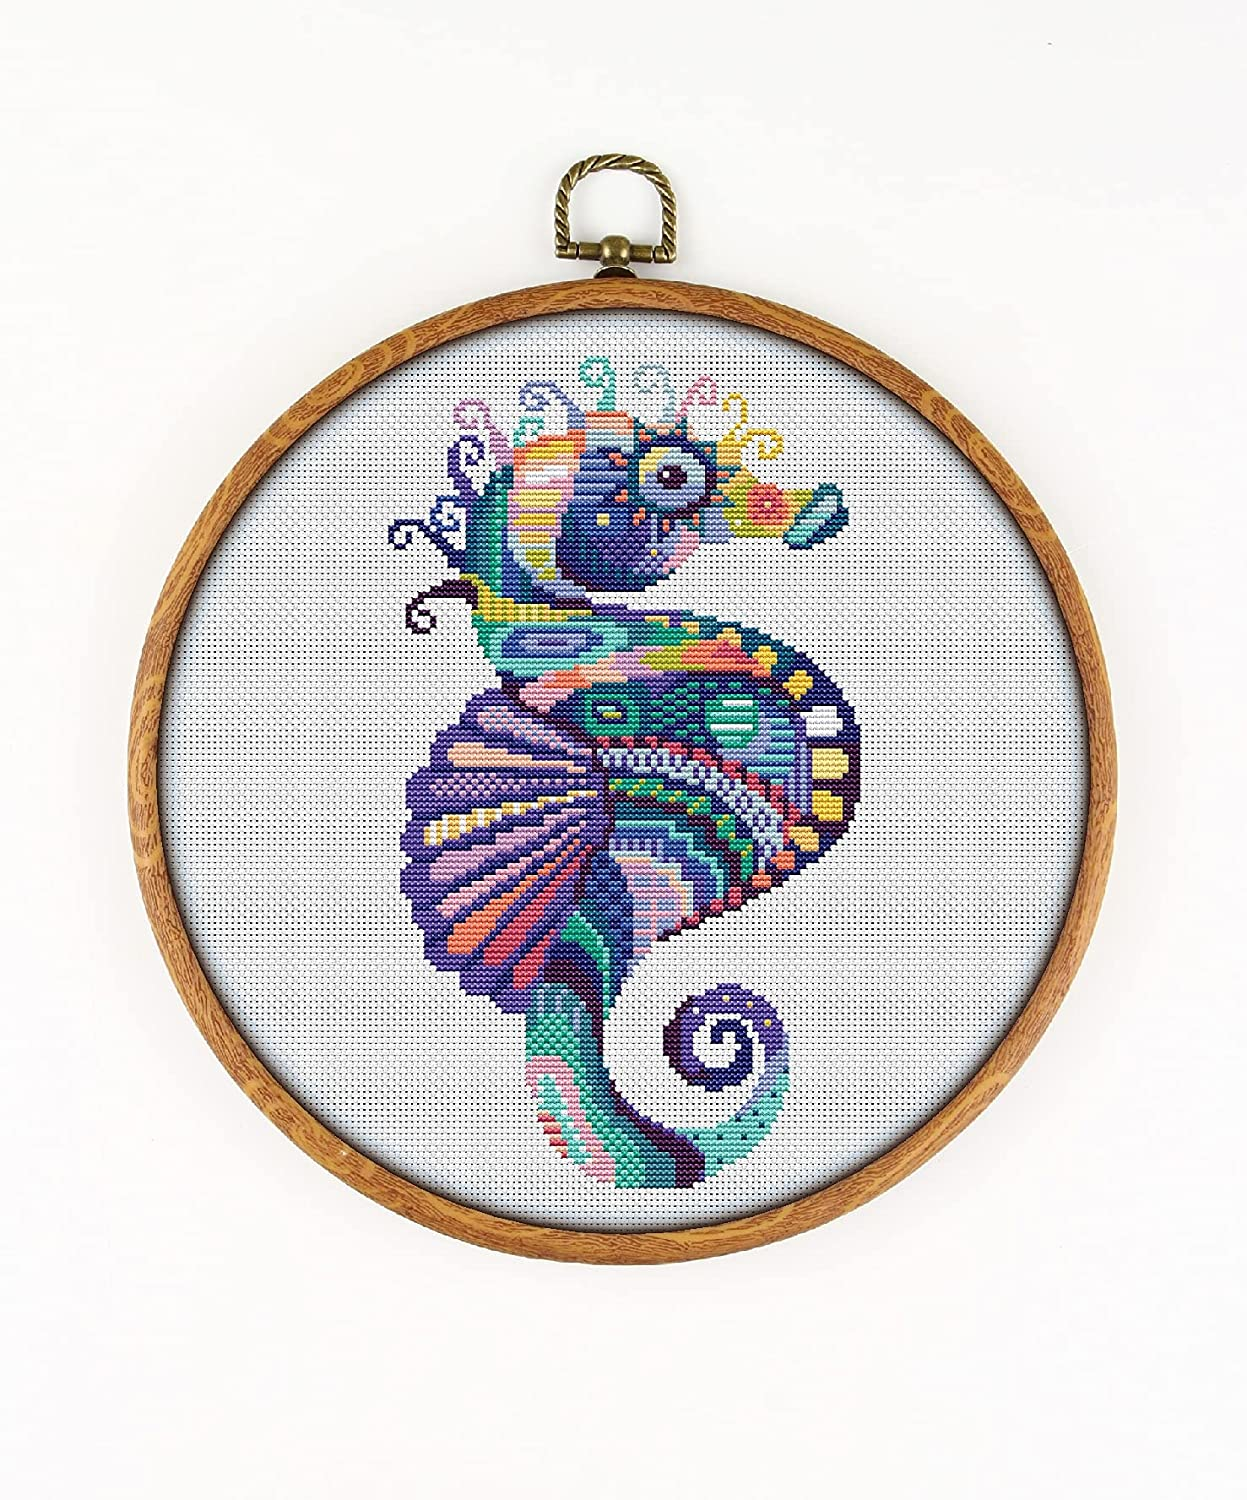 Mandala Seahorse K472 Challenge the lowest SALENEW very popular! price of Japan Counted Cross KIT#3. Threads Needl Stitch